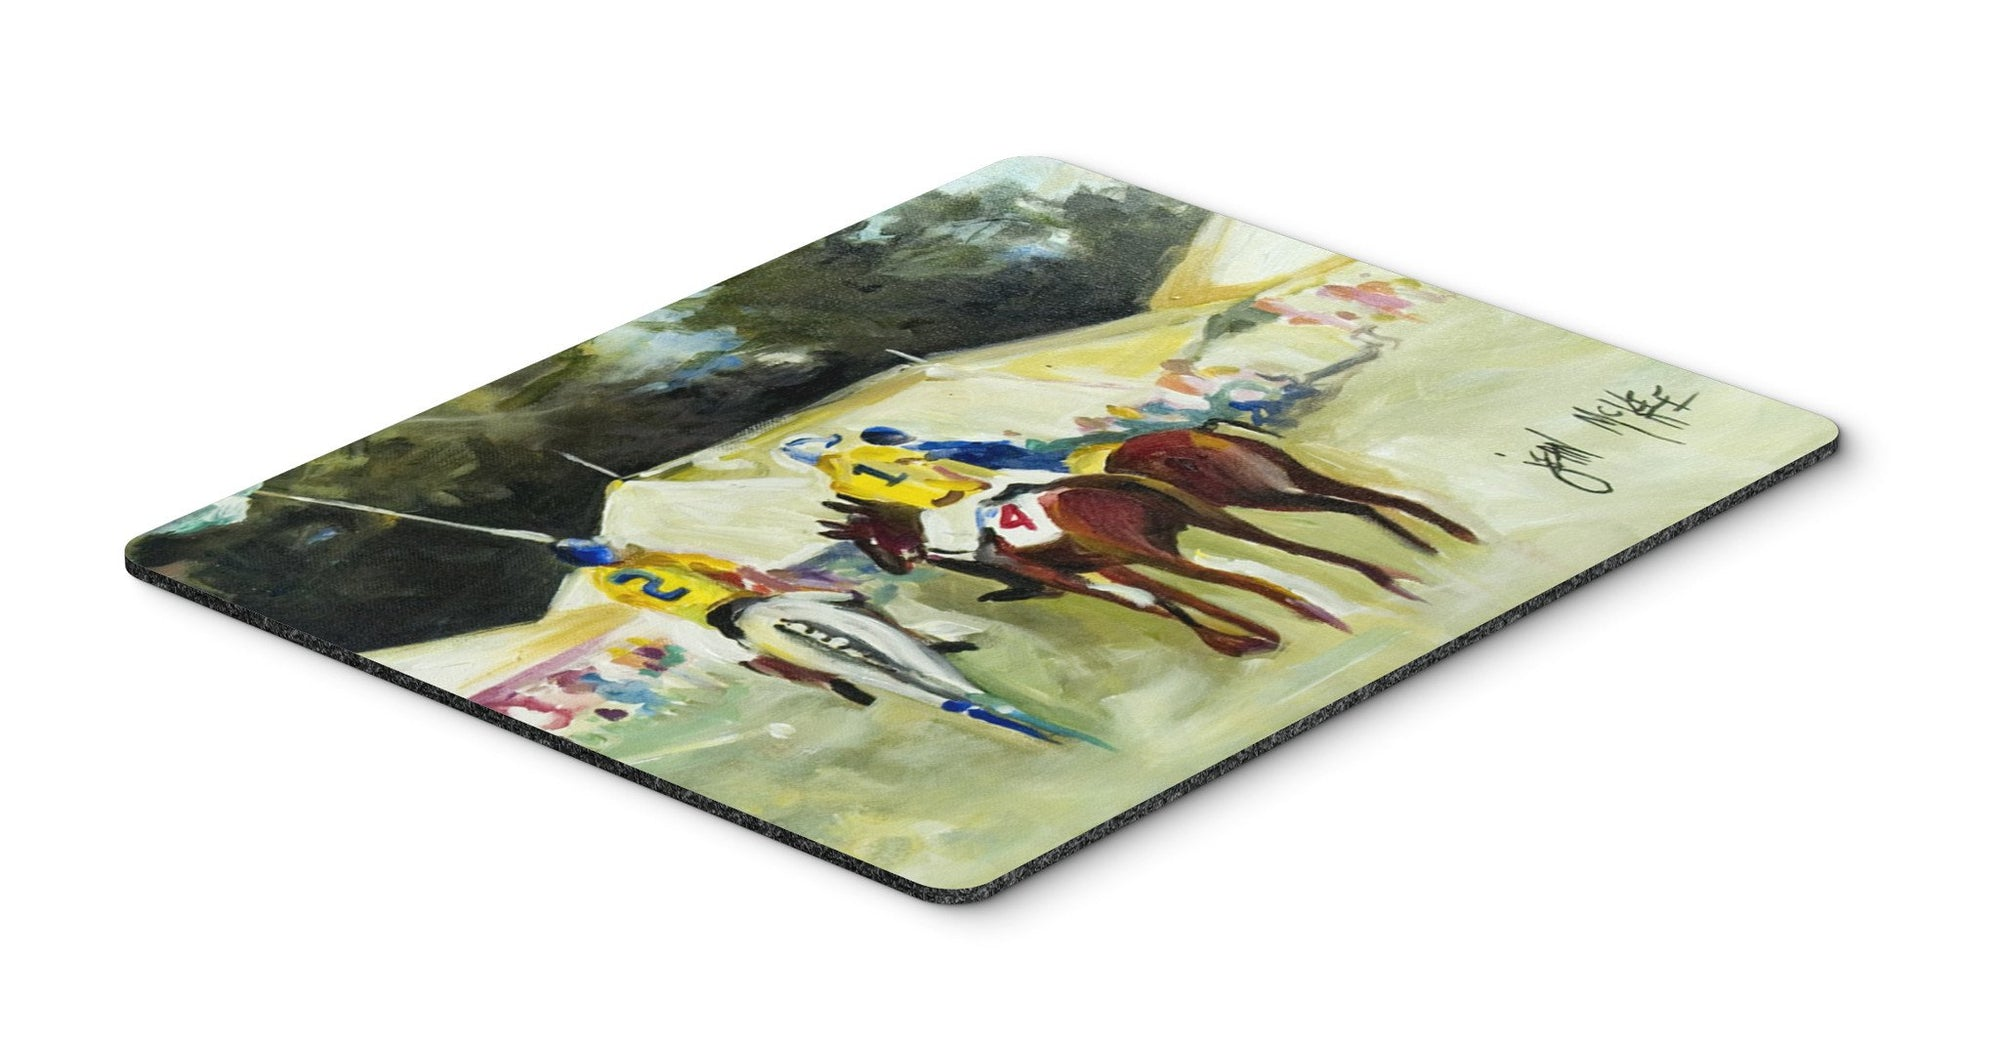 Polo at the Point Mouse Pad, Hot Pad or Trivet JMK1006MP by Caroline's Treasures